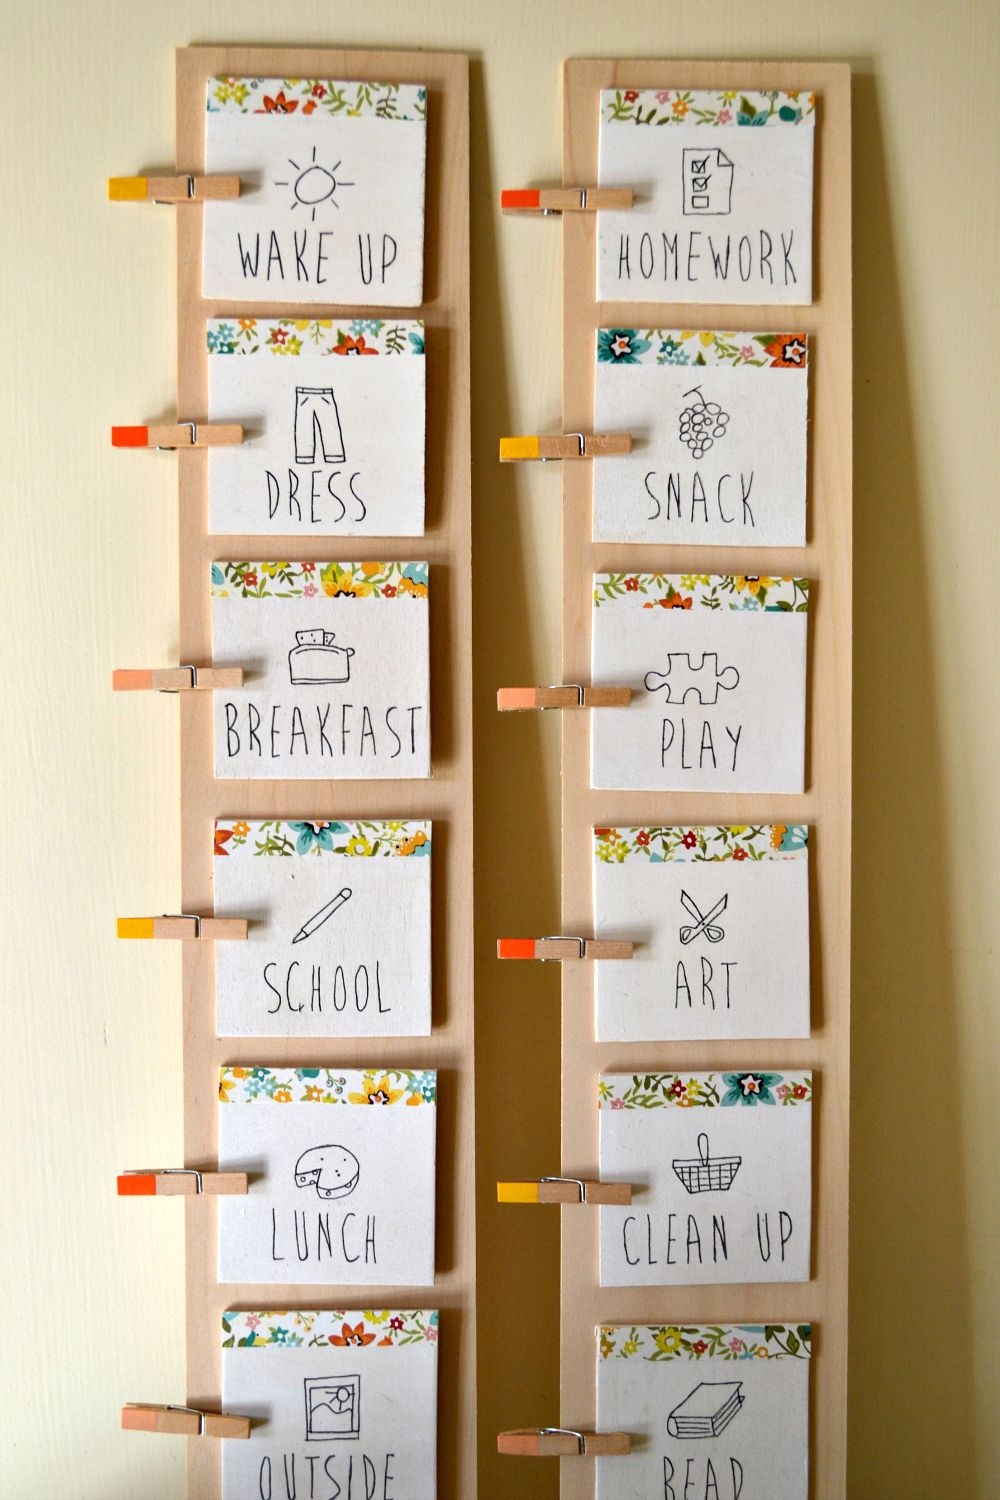 childrens care routines Children are using early math skills throughout their daily routines and activities this is good news as these skills are important for being ready for school.